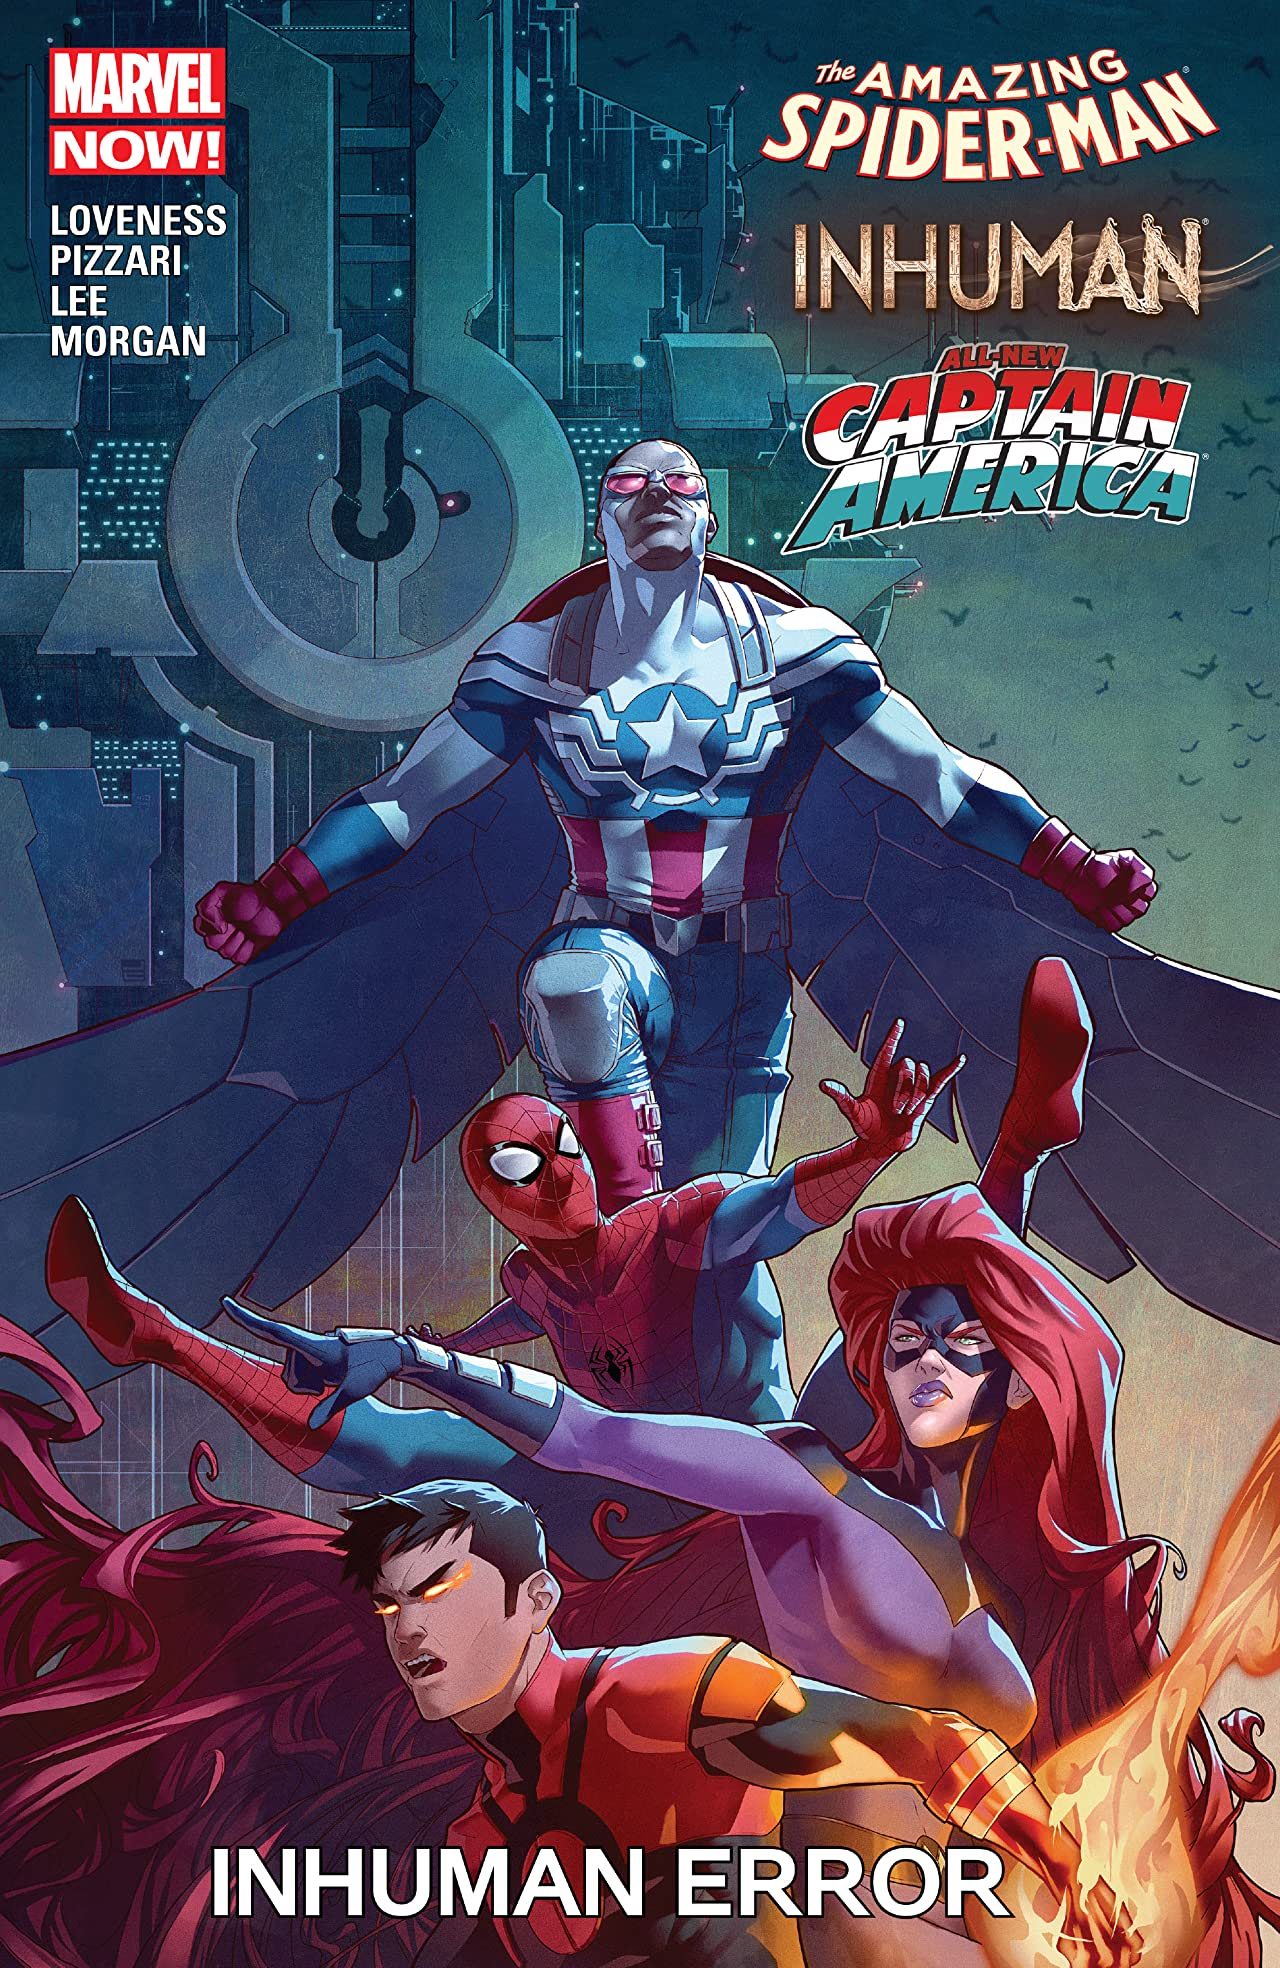 Amazing Spider-Man / Inhumans / All-New Captain America: Inhuman Error